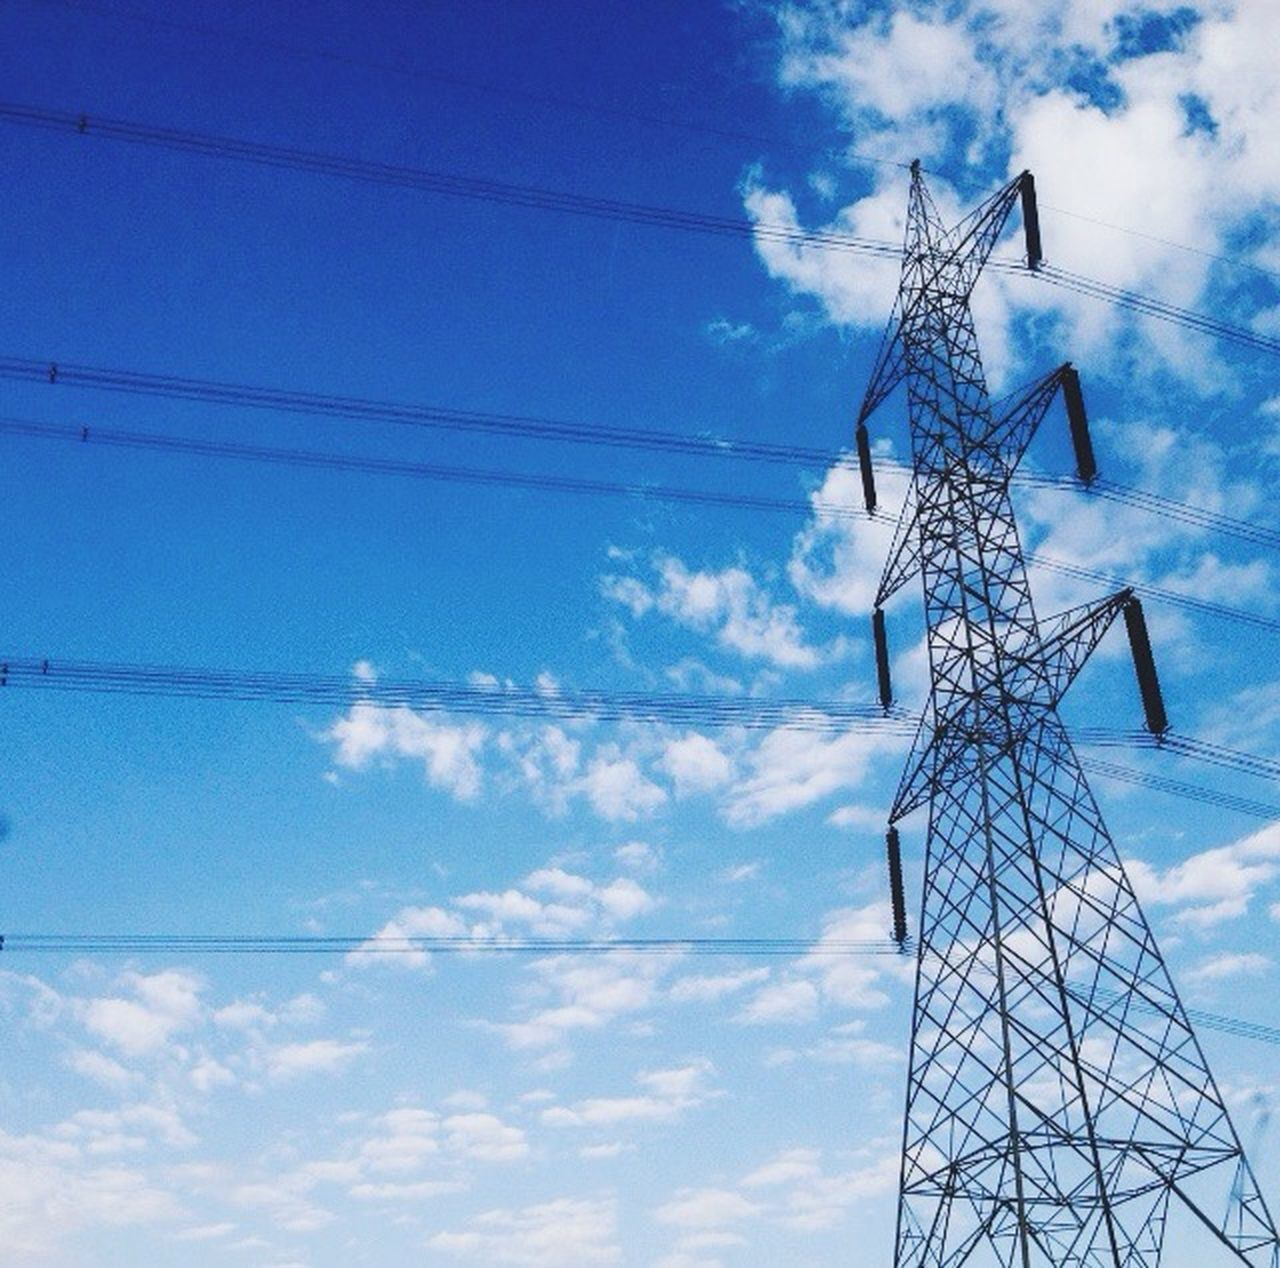 sky, low angle view, fuel and power generation, cable, cloud - sky, electricity pylon, blue, no people, day, connection, outdoors, electricity, wind power, alternative energy, technology, wind turbine, windmill, industrial windmill